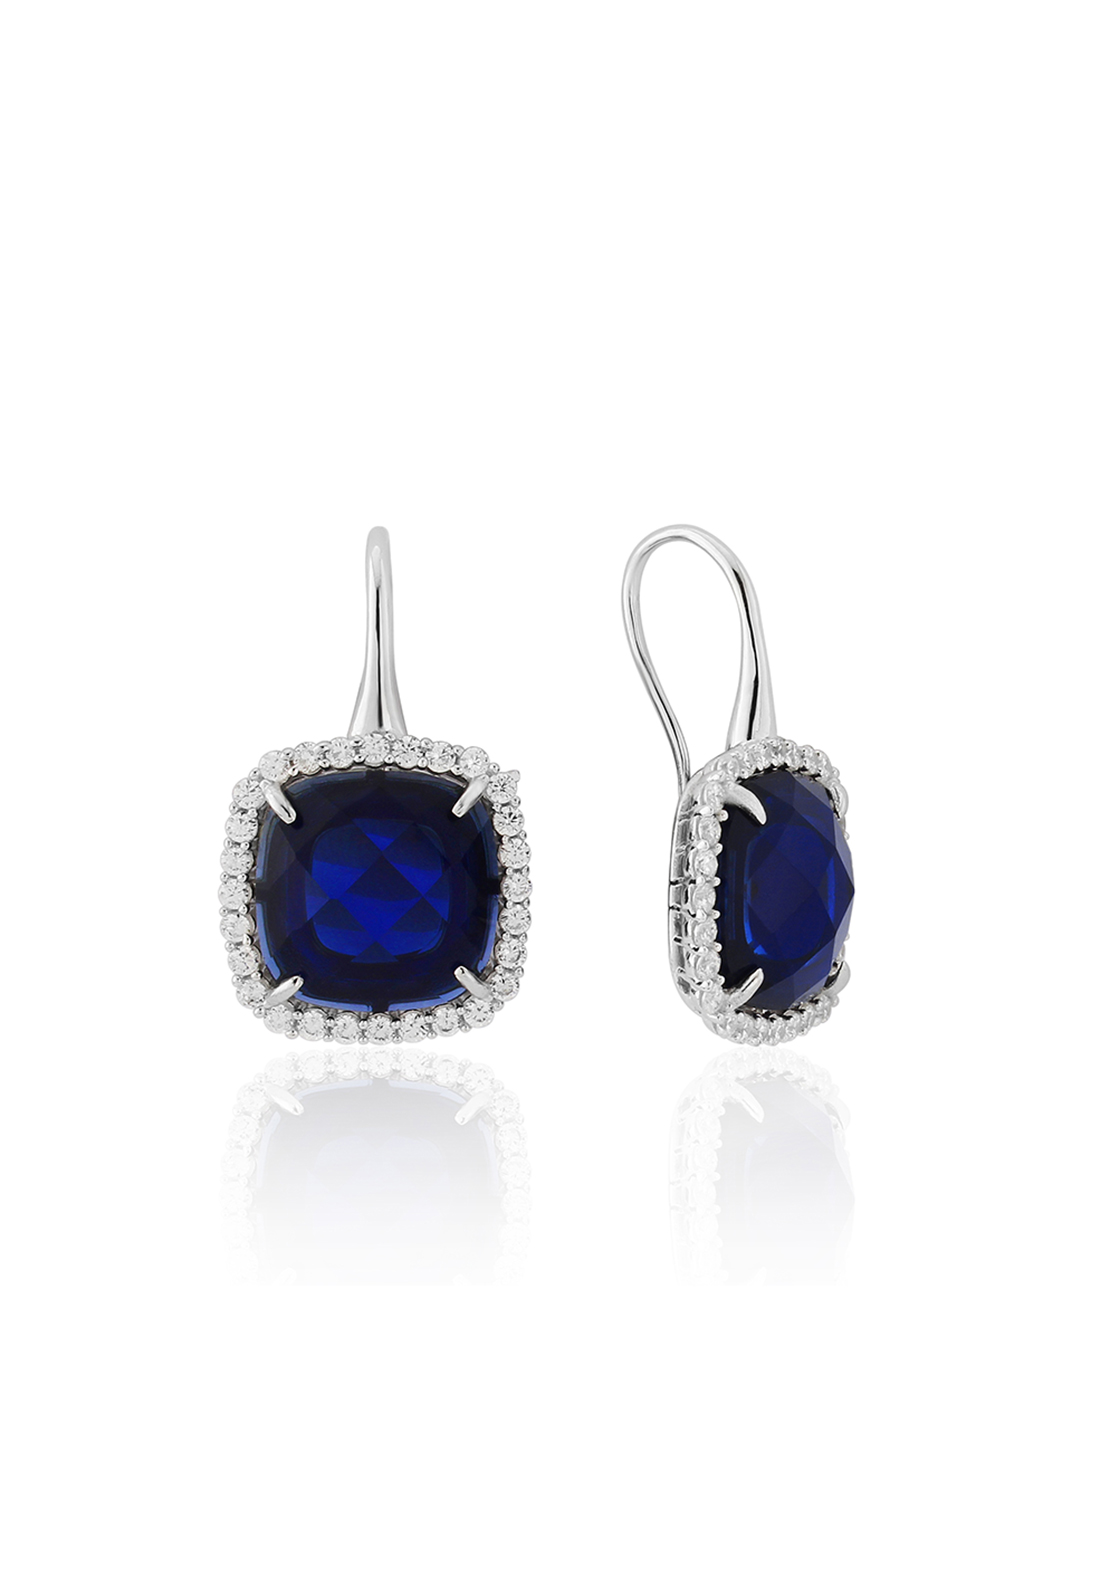 Waterford Crystal Faux Sapphire And Pave Drop Earrings